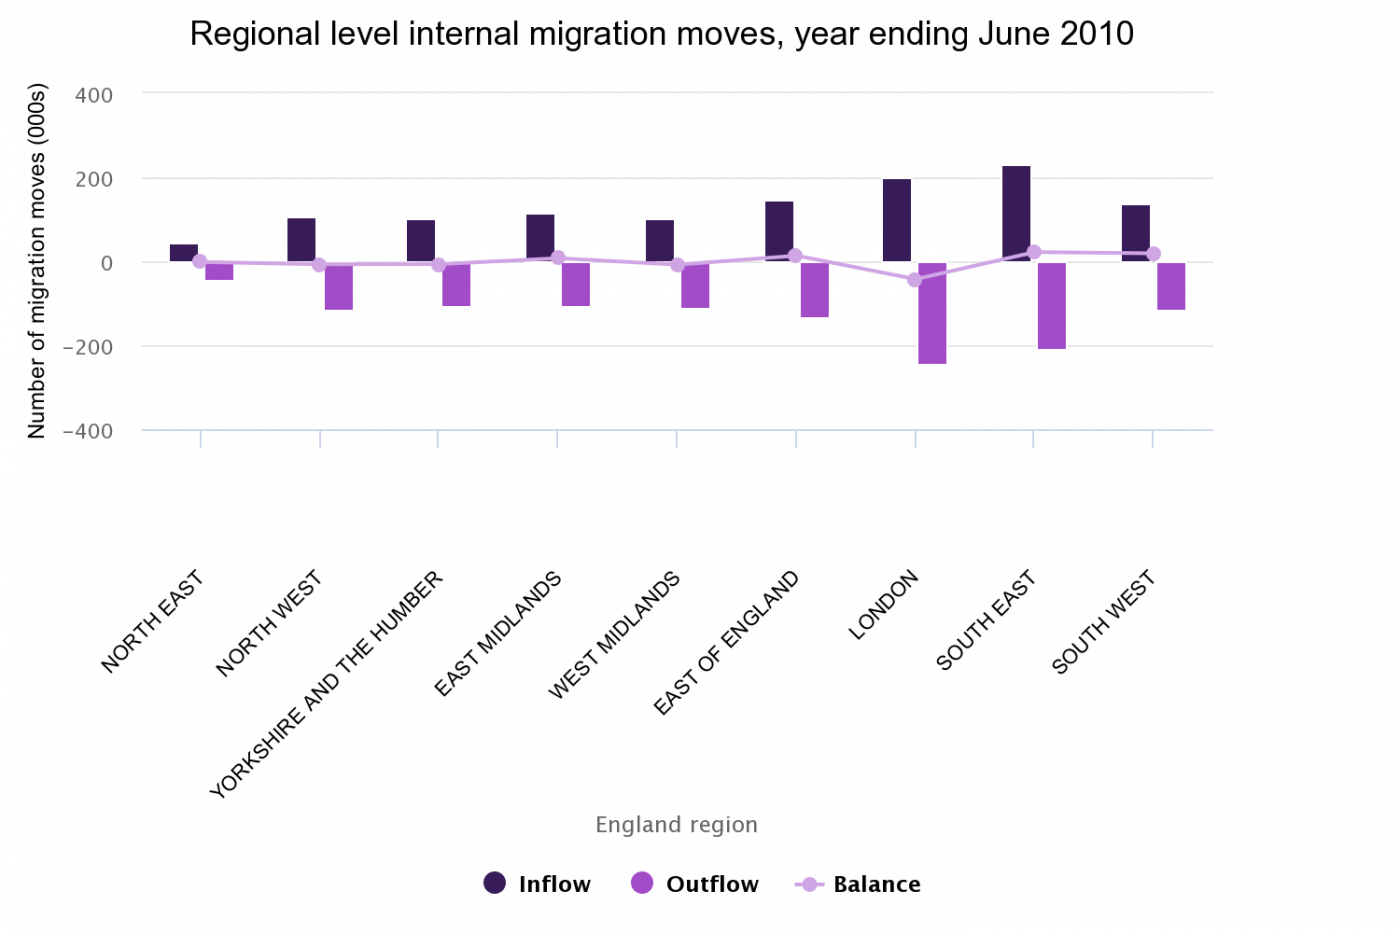 Regional level internal migration moves, year ending June 2010